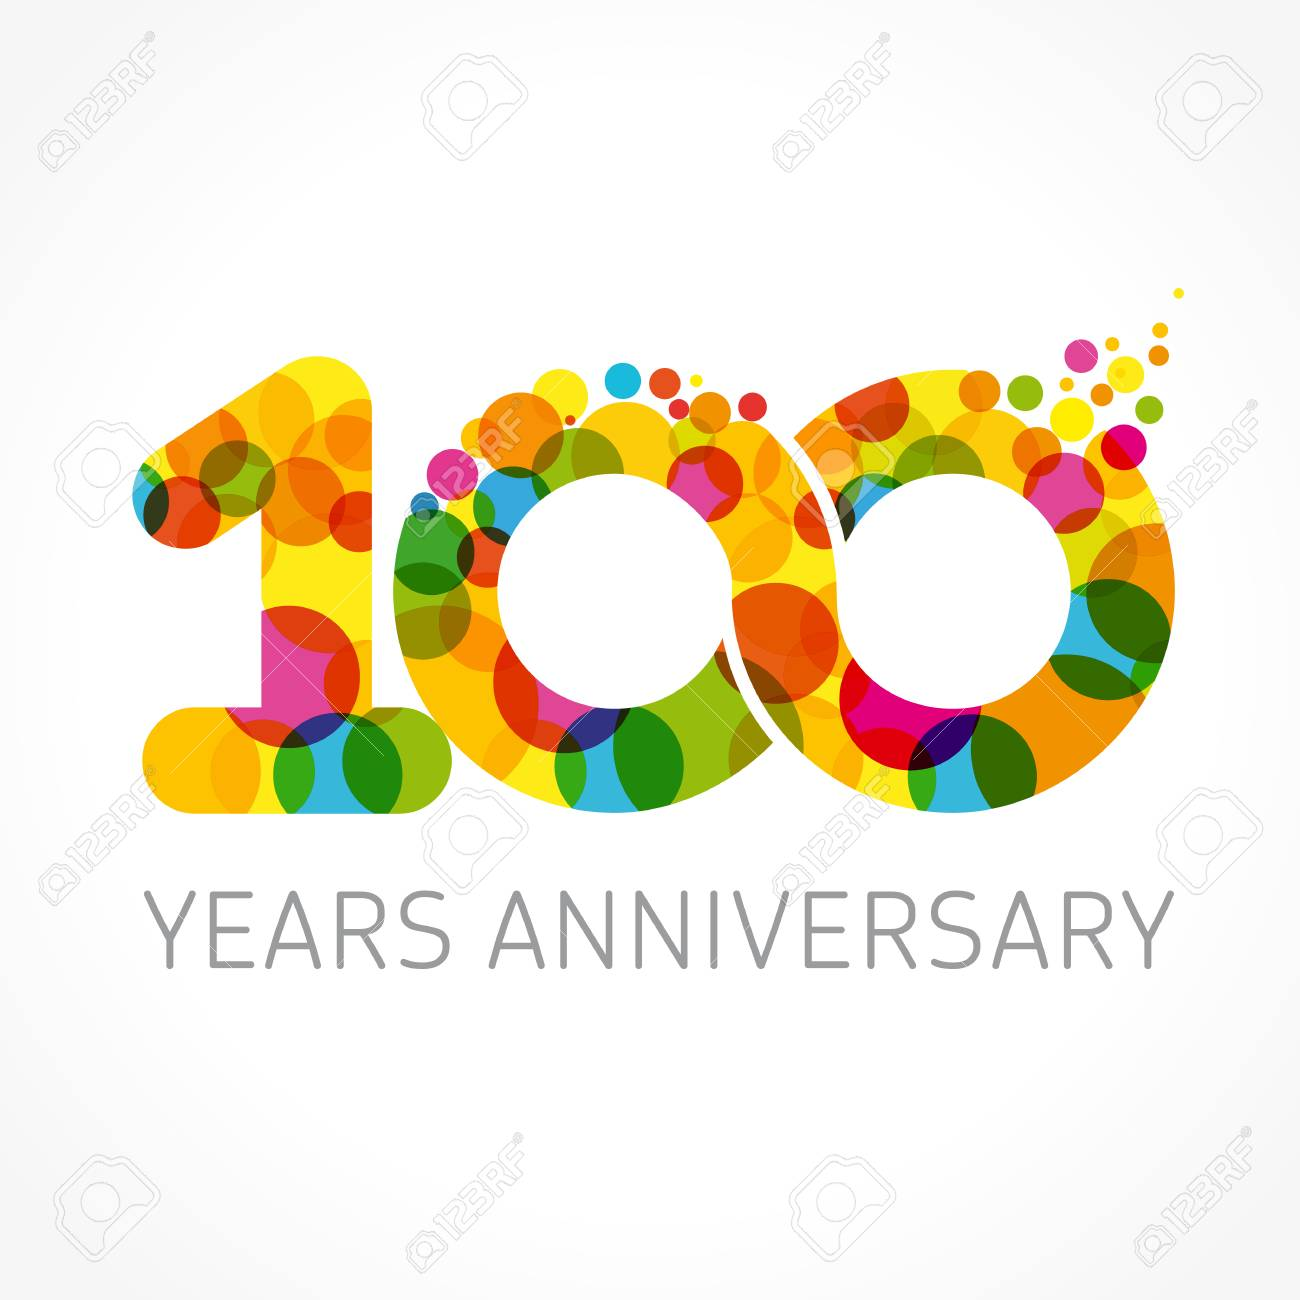 A 100 Years Old Multicolored Logotype For Anniversary Greetings